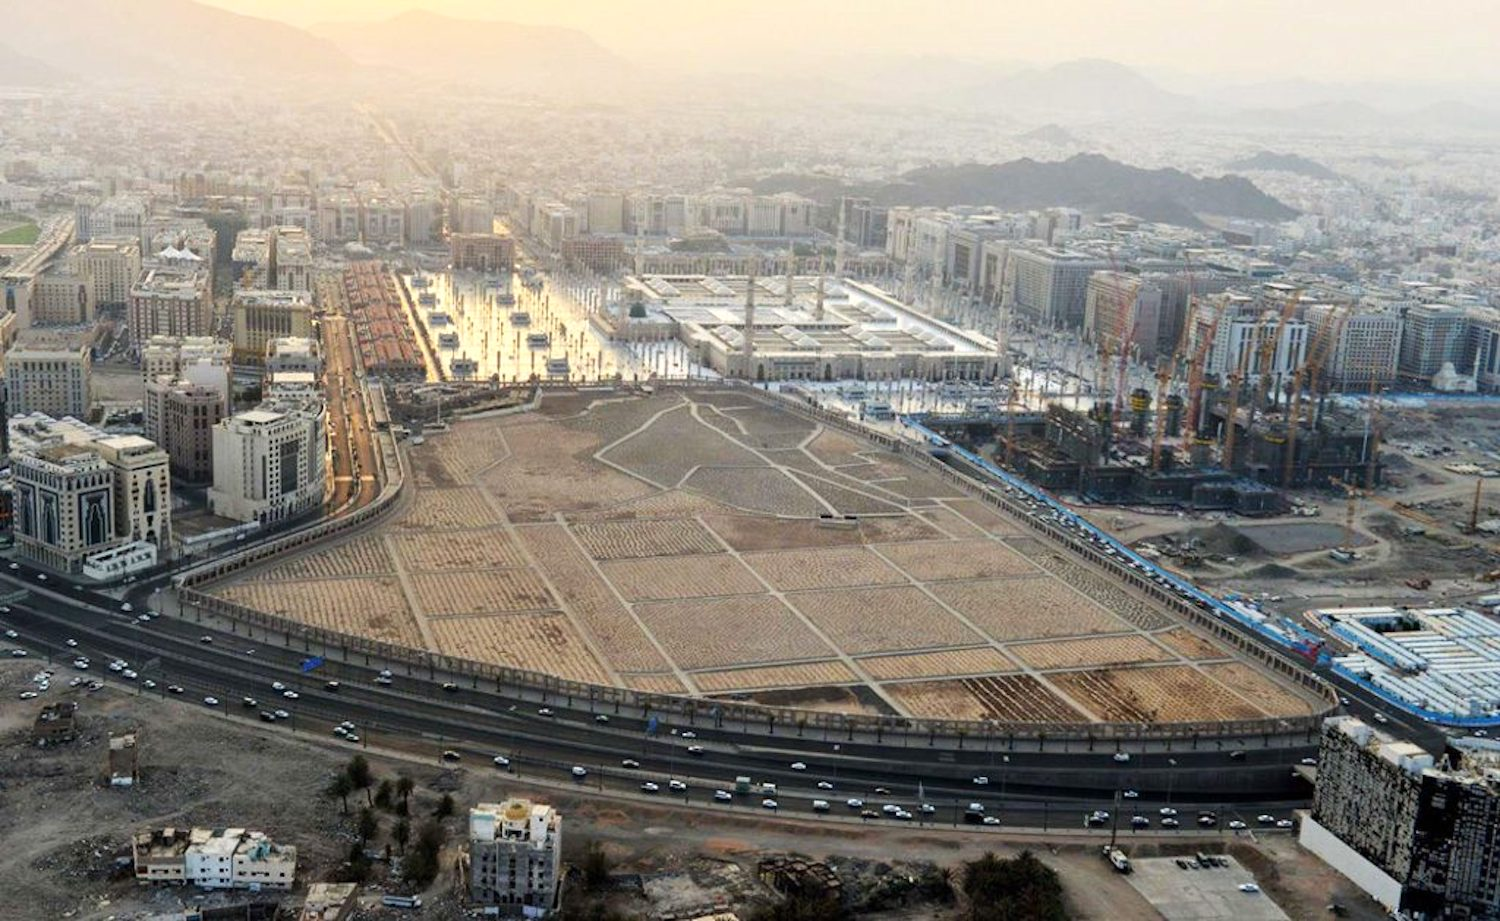 An aerial view of the whole of Al-Baqi